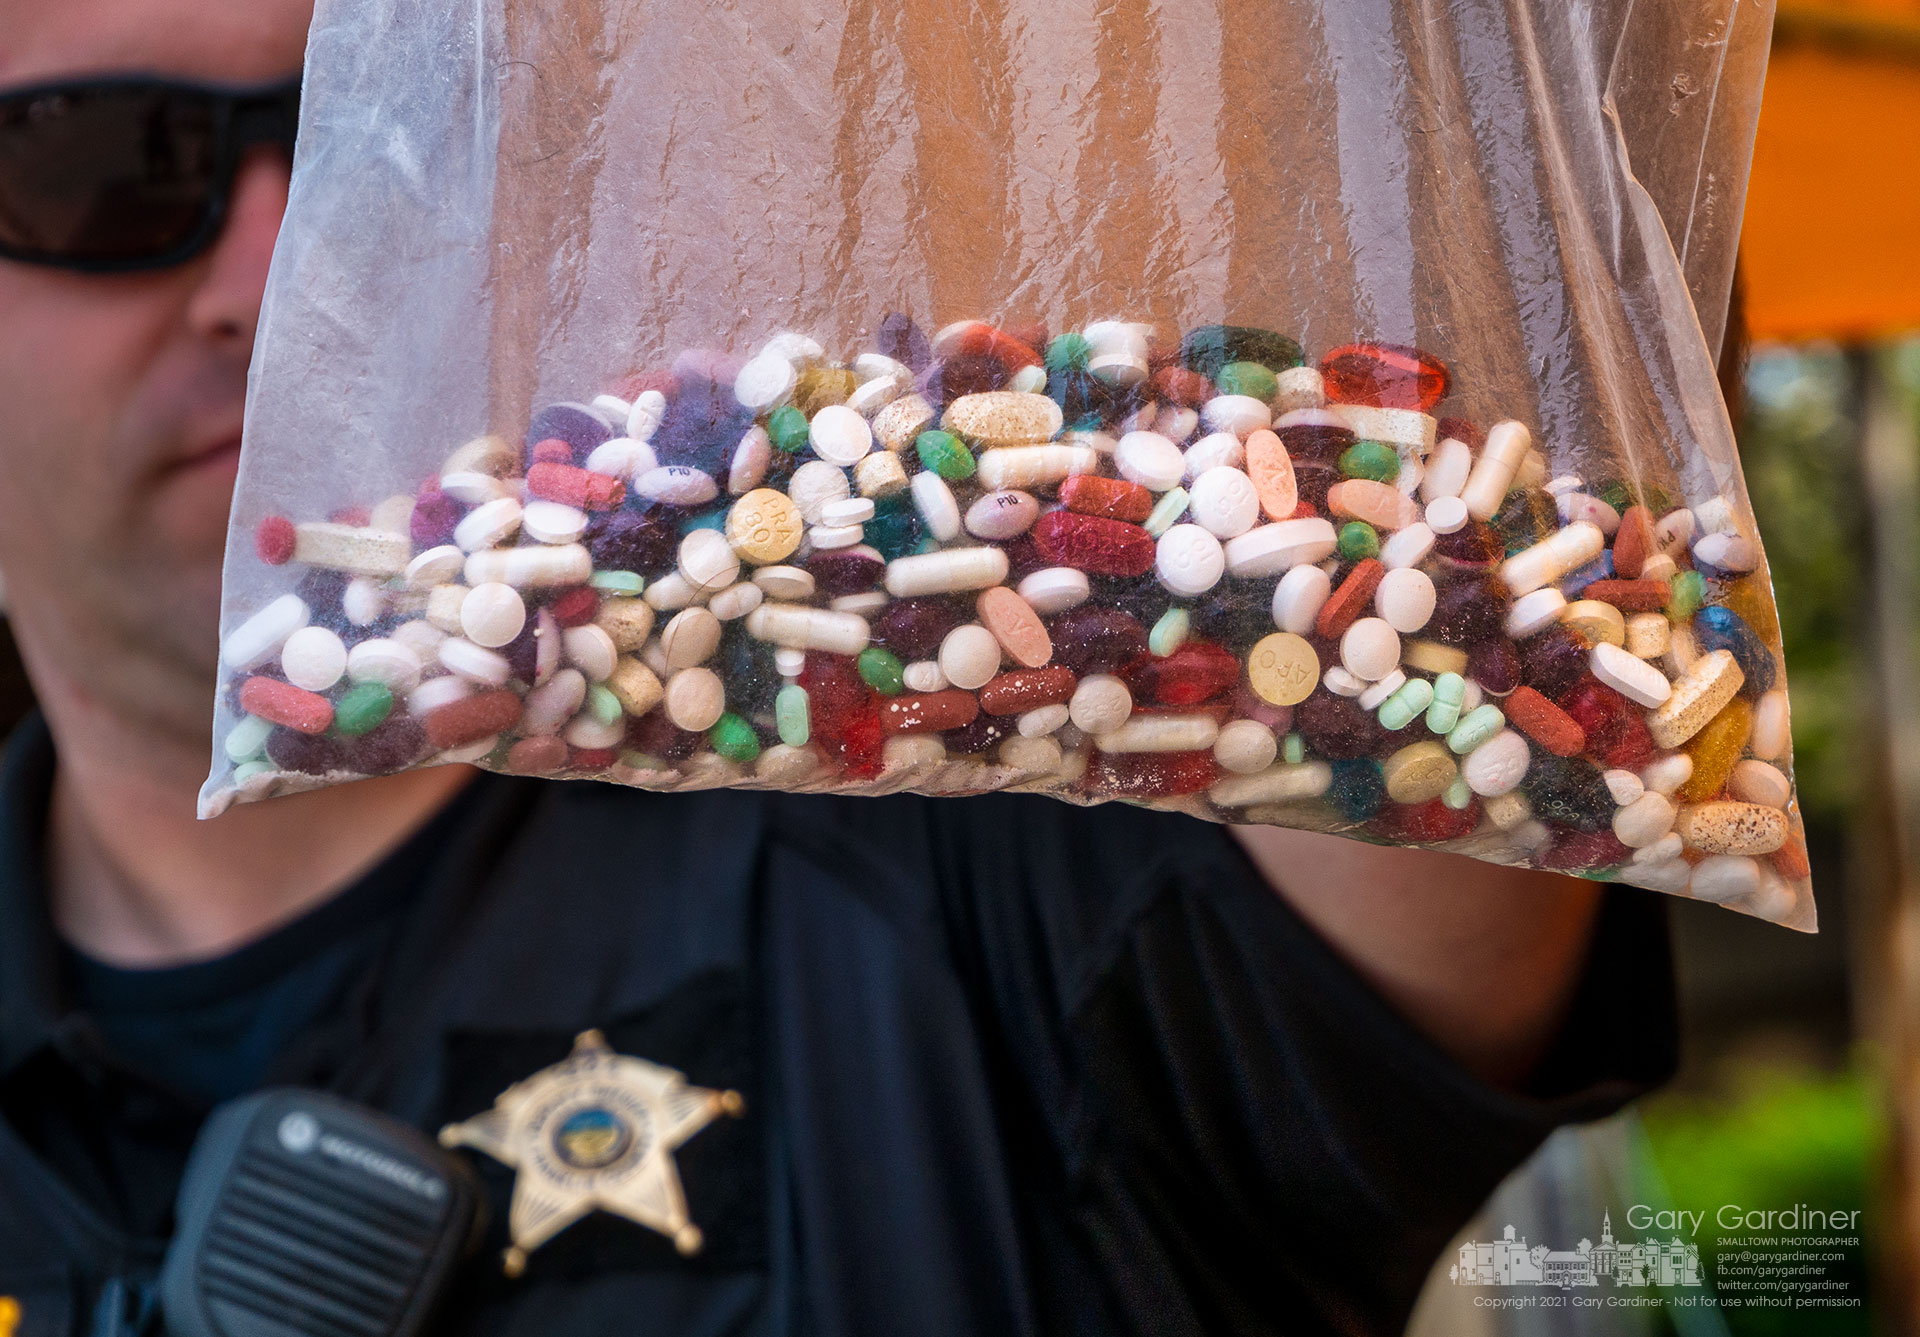 A Franklin County Deputy Sheriff holds a plastic bag containing unused, expired, or not needed prescription and over-the-counter drugs dropped off in the drive-thru at the Kroger on Schrock Road during Saturday's event sponsored by the Ohio Attorney General. My Final Photo for July 31, 2021.